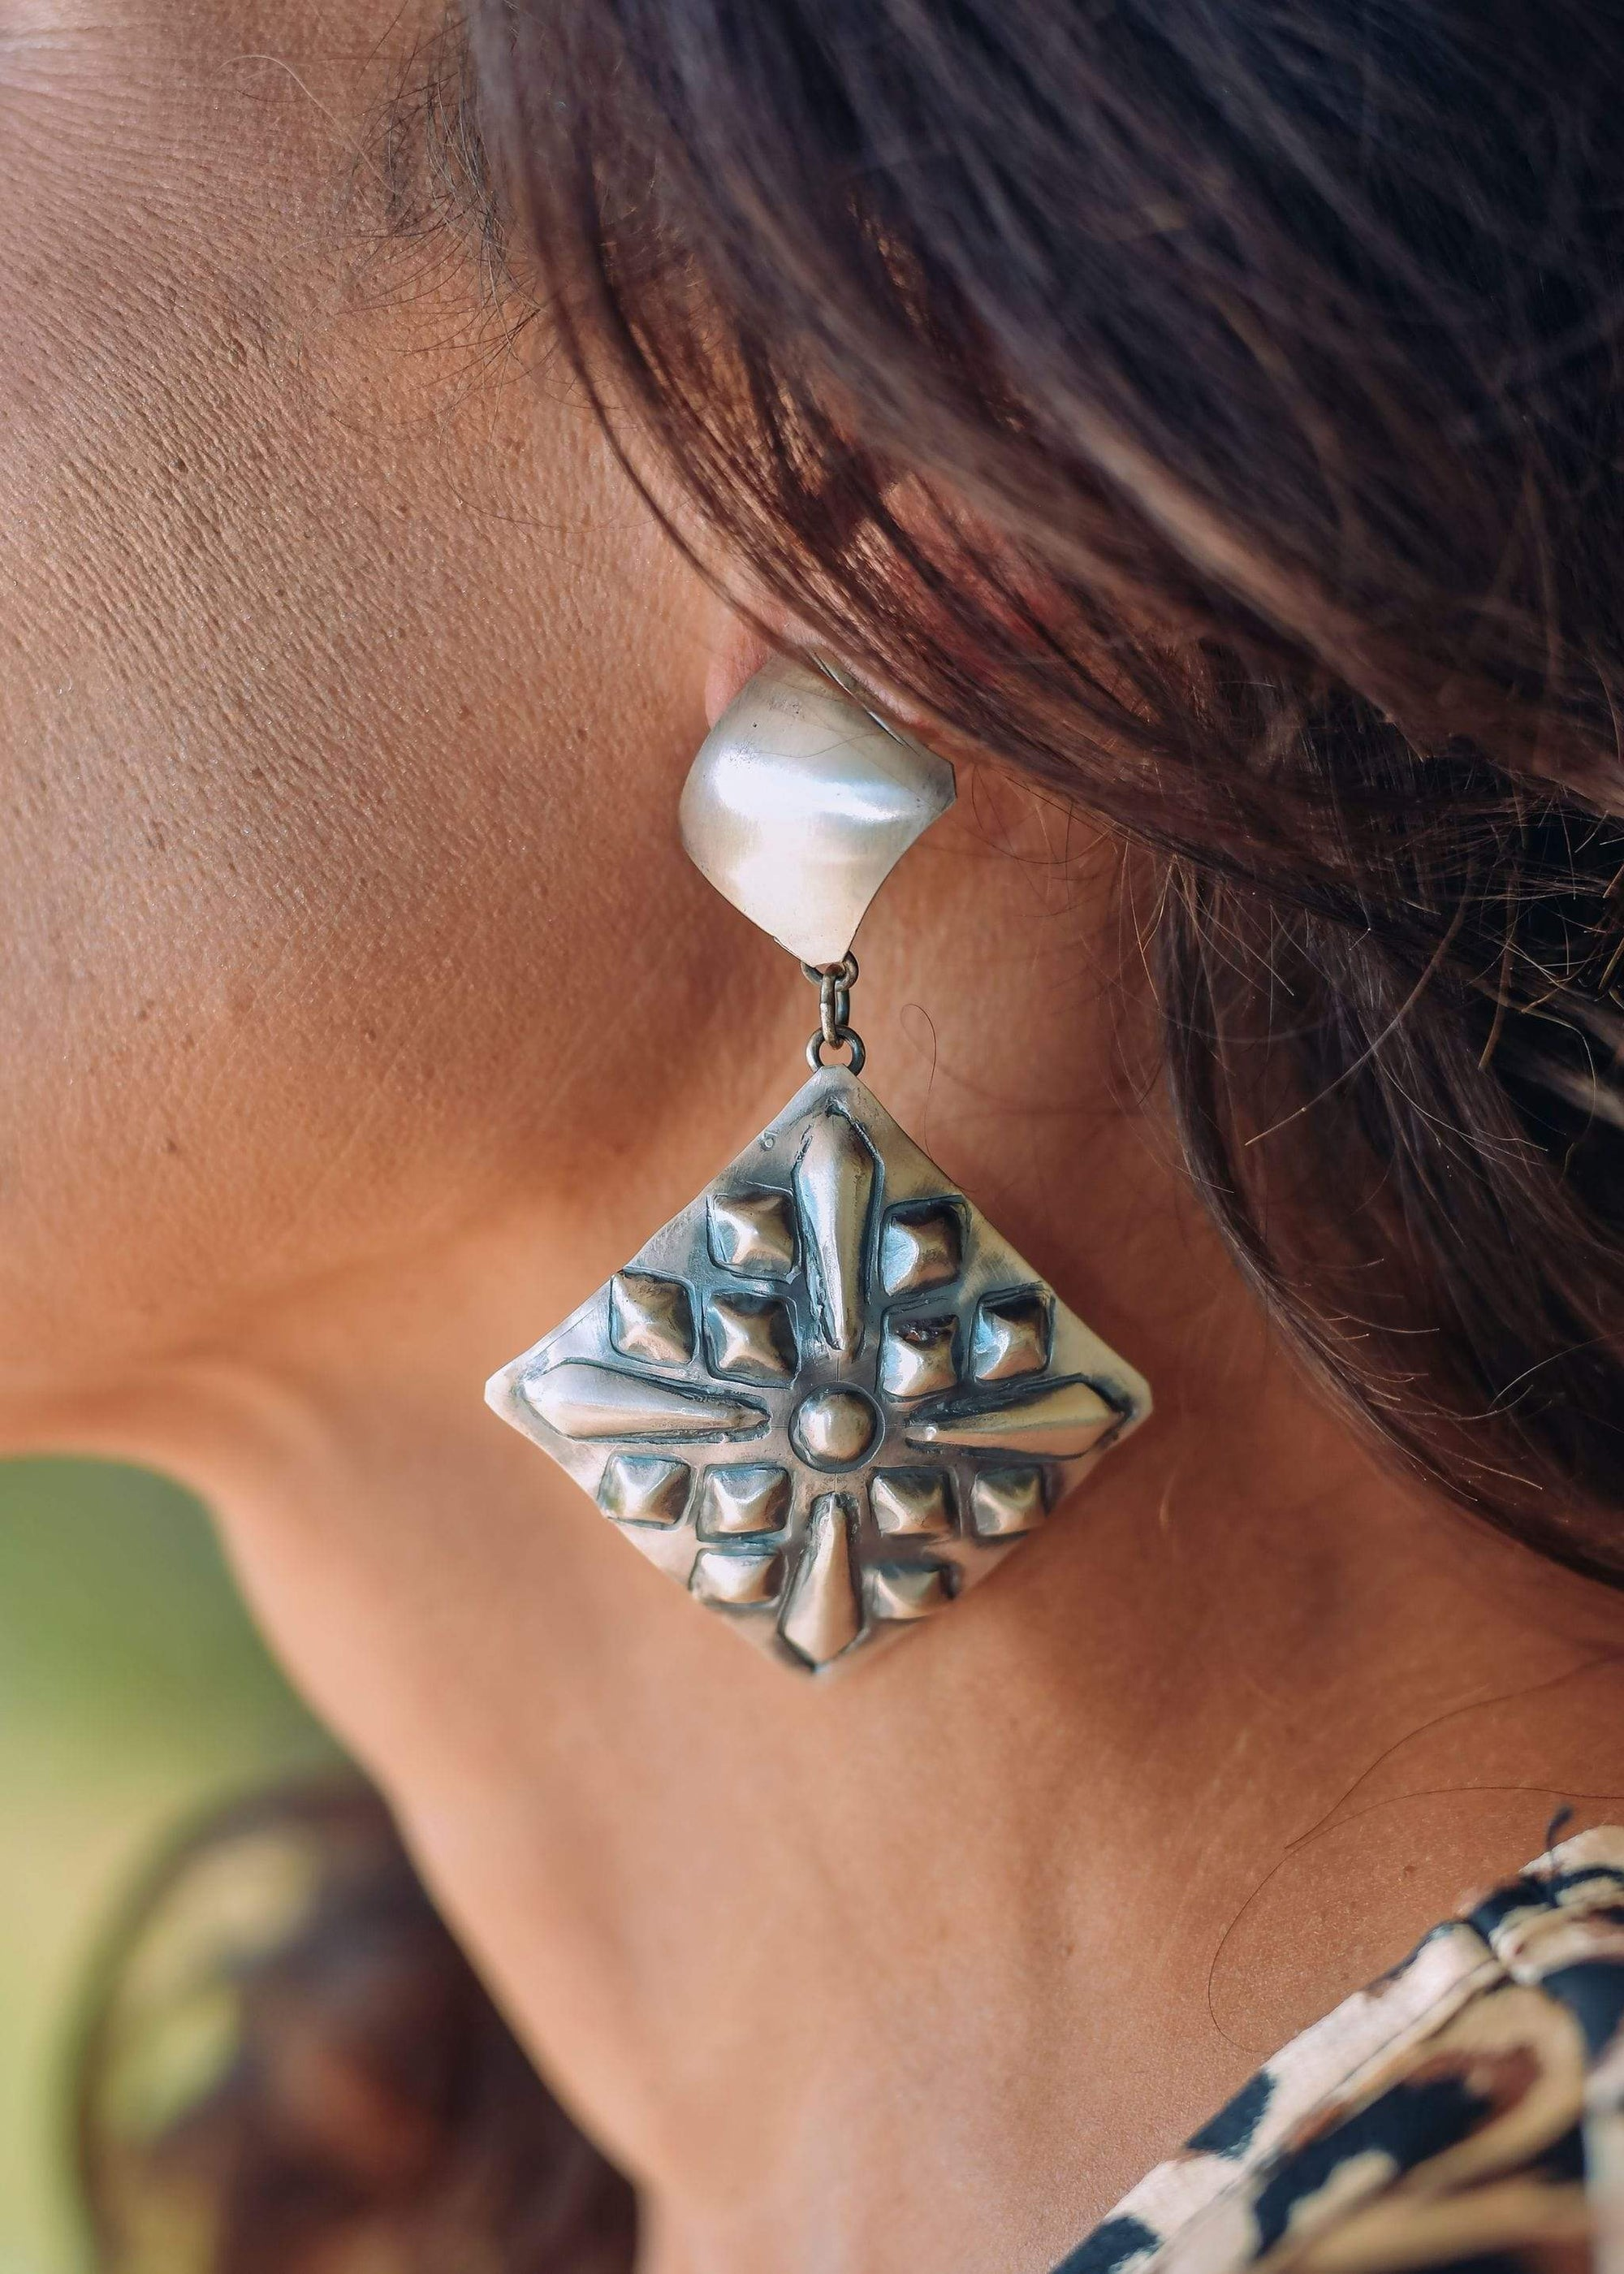 Accessorize In Style Sterling Earrings Stamped & Embossed Diamond Shaped Earrings